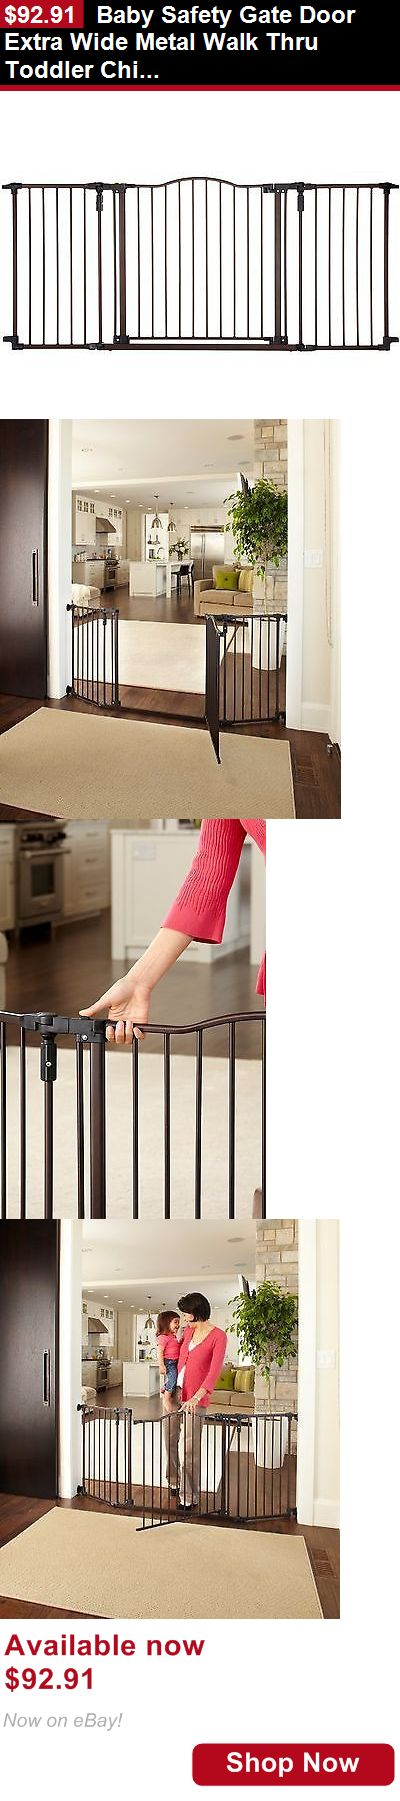 Baby Safety Gates: Baby Safety Gate Door Extra Wide Metal Walk Thru Toddler Child Pet Dog Cat Fence BUY IT NOW ONLY: $92.91